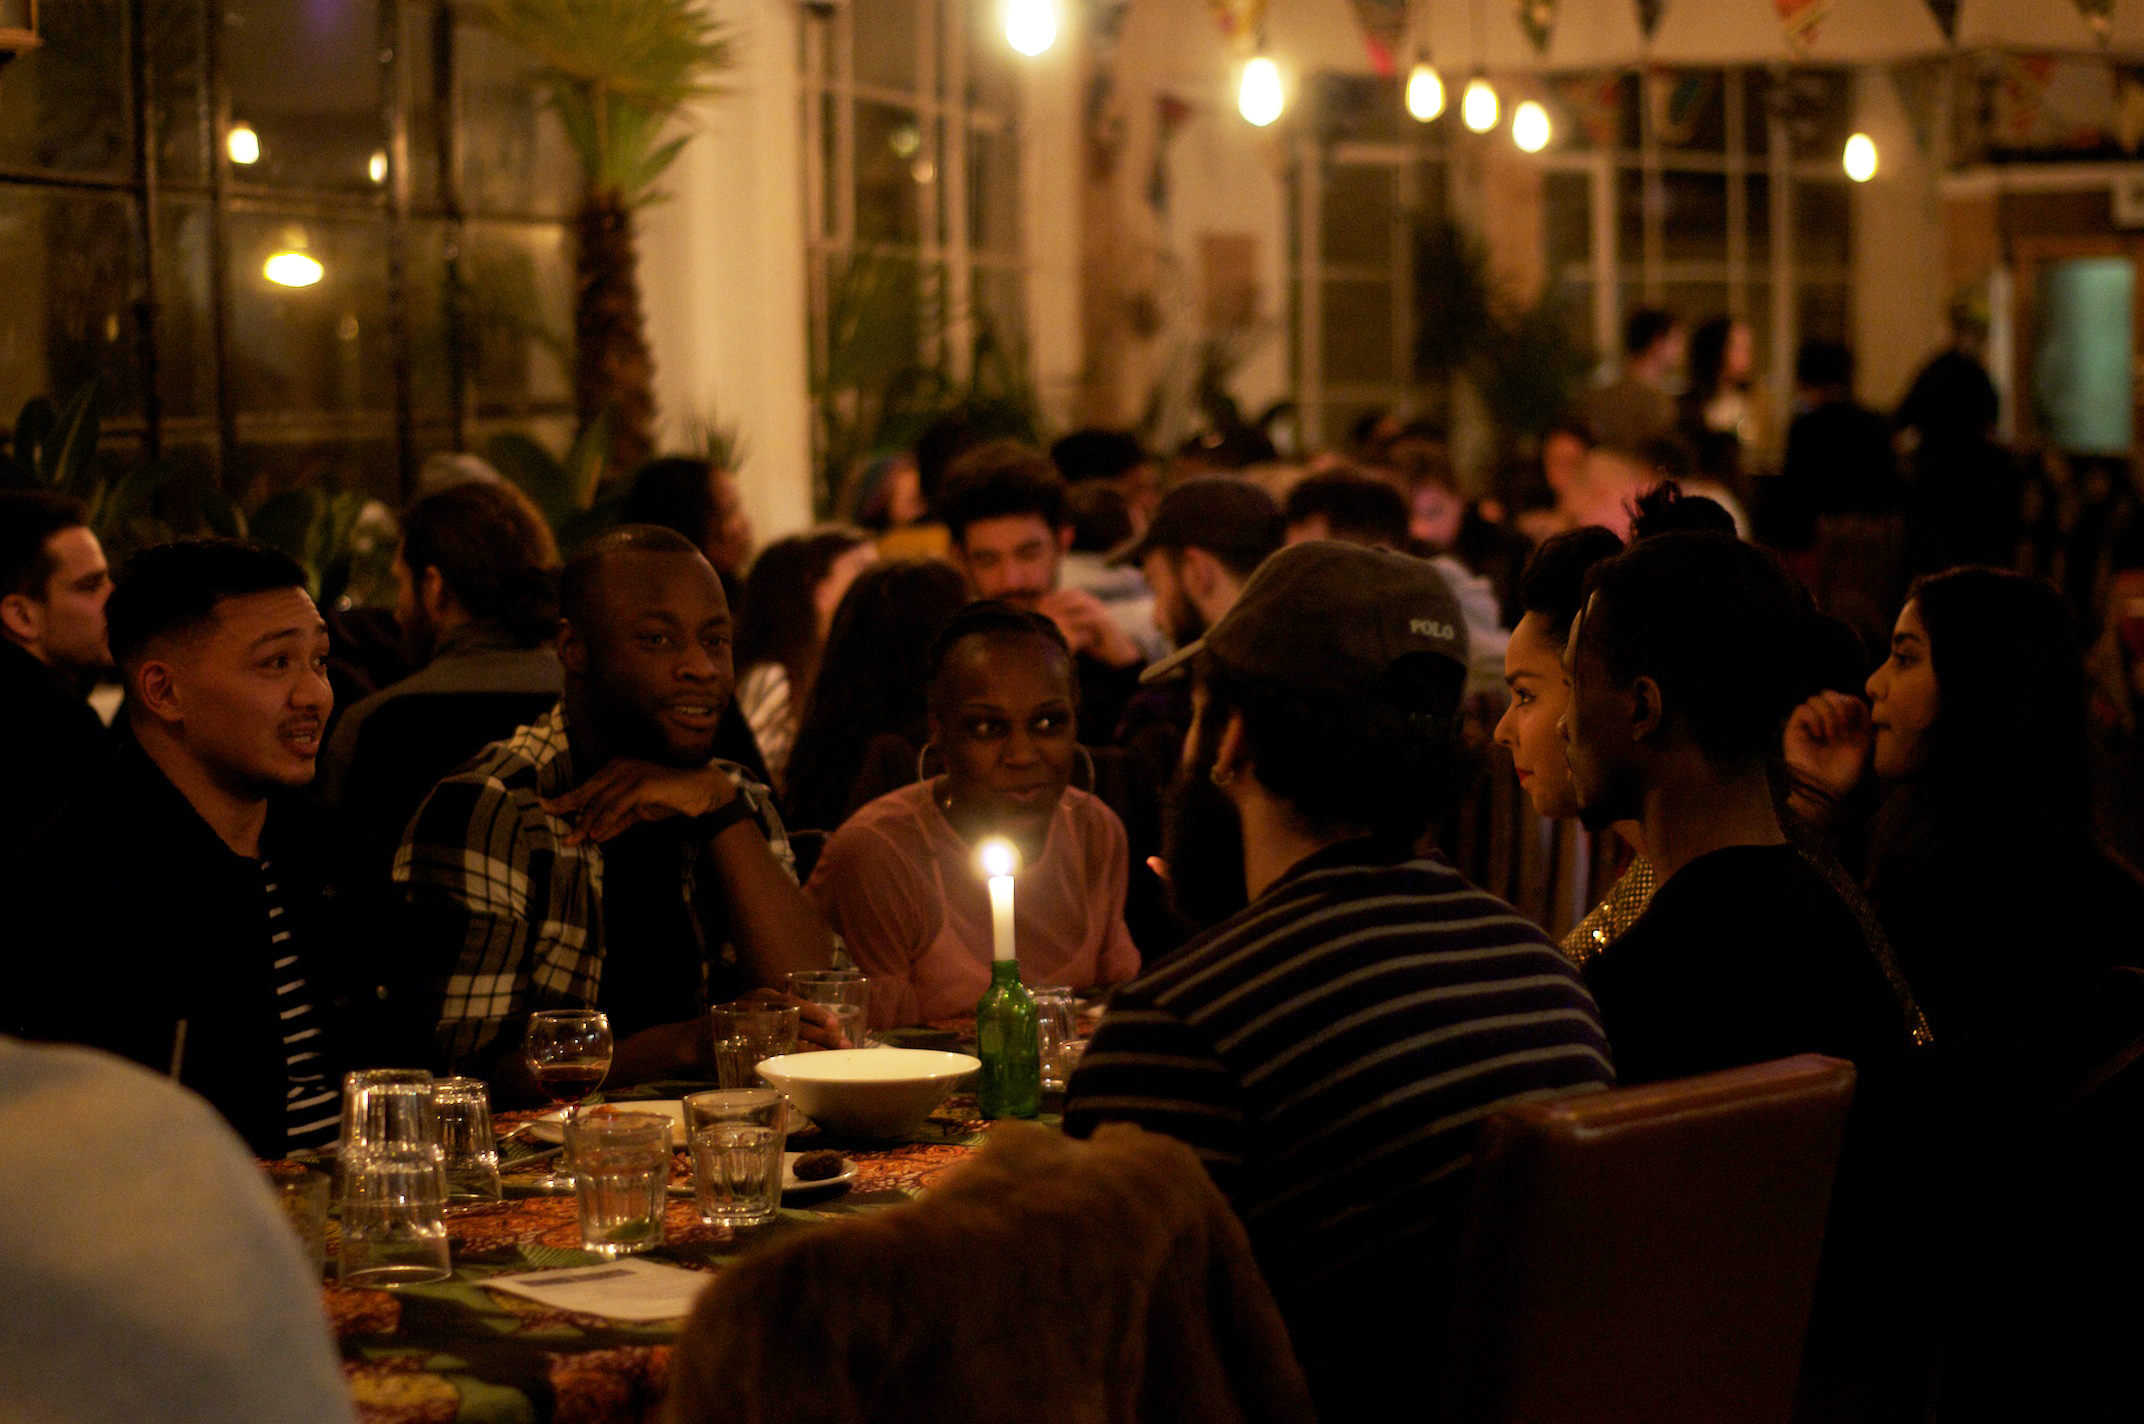 Diners enjoy Senegalese pop-up restaurant with live music